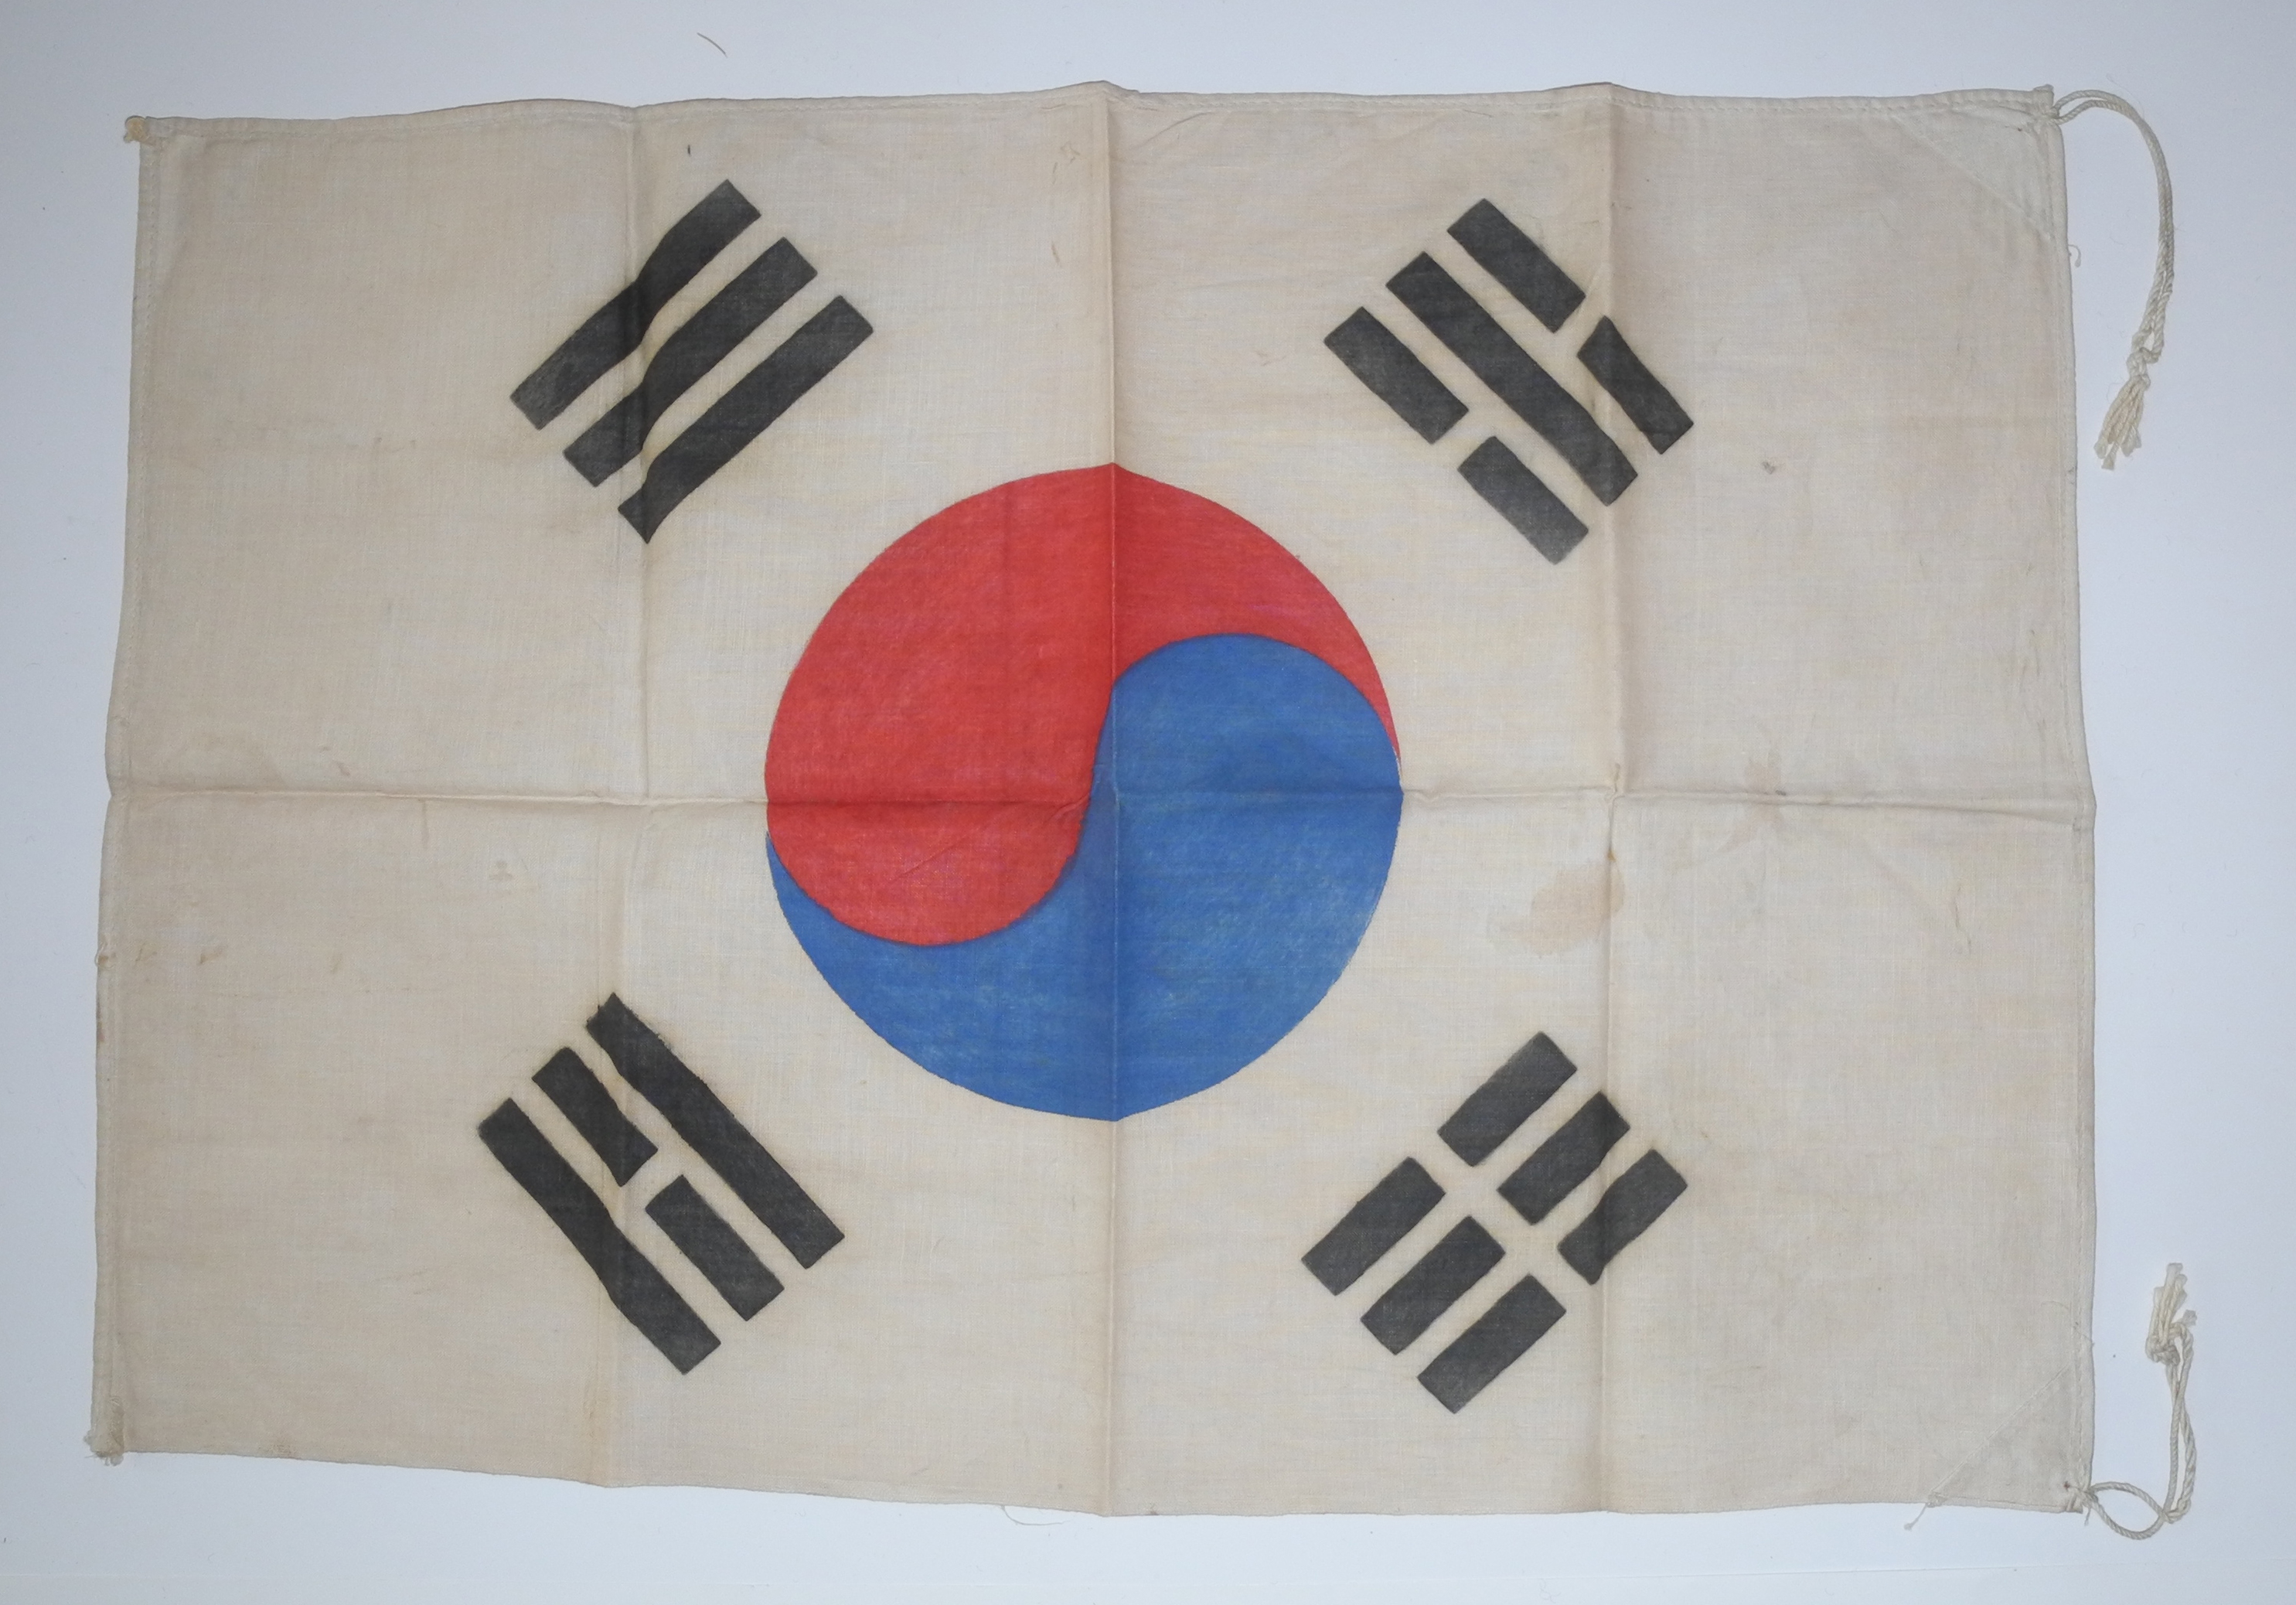 Korean War era South Korea flag